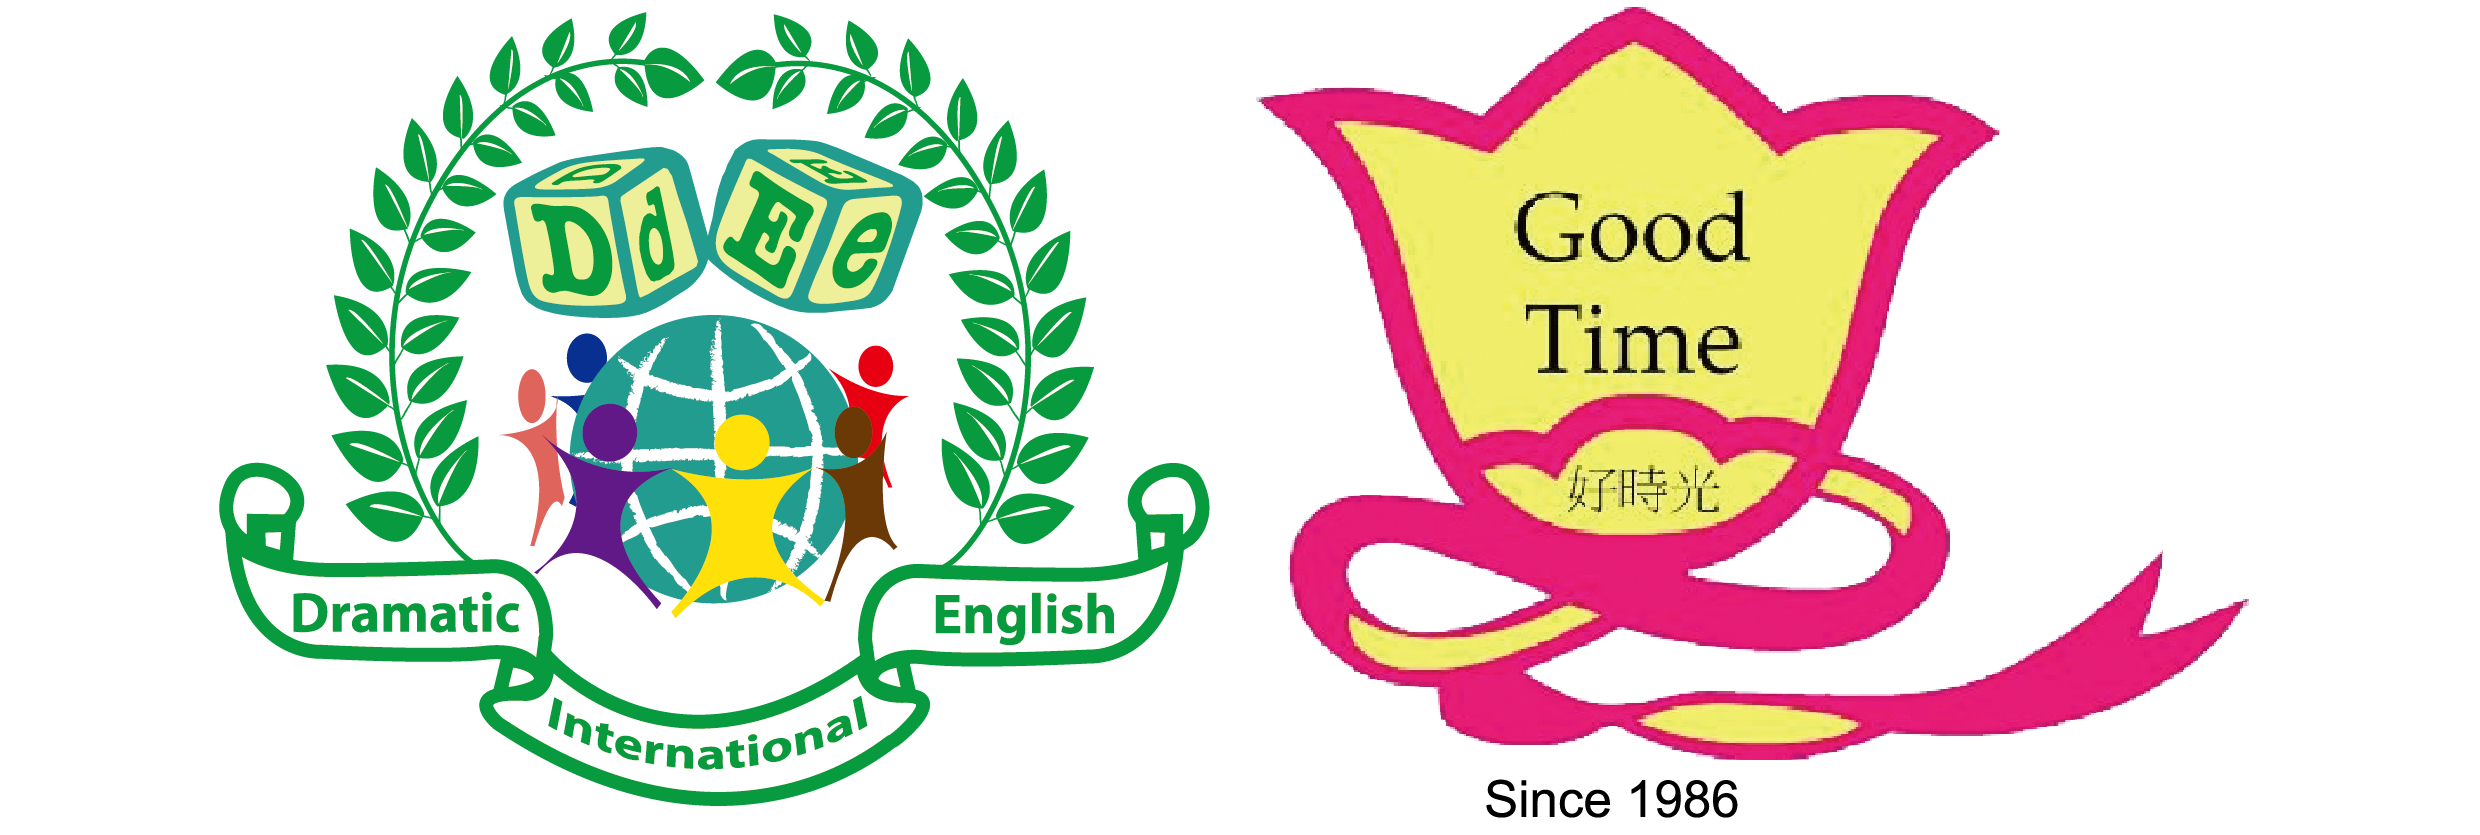 Good Time International Play Schools · Kindergartens